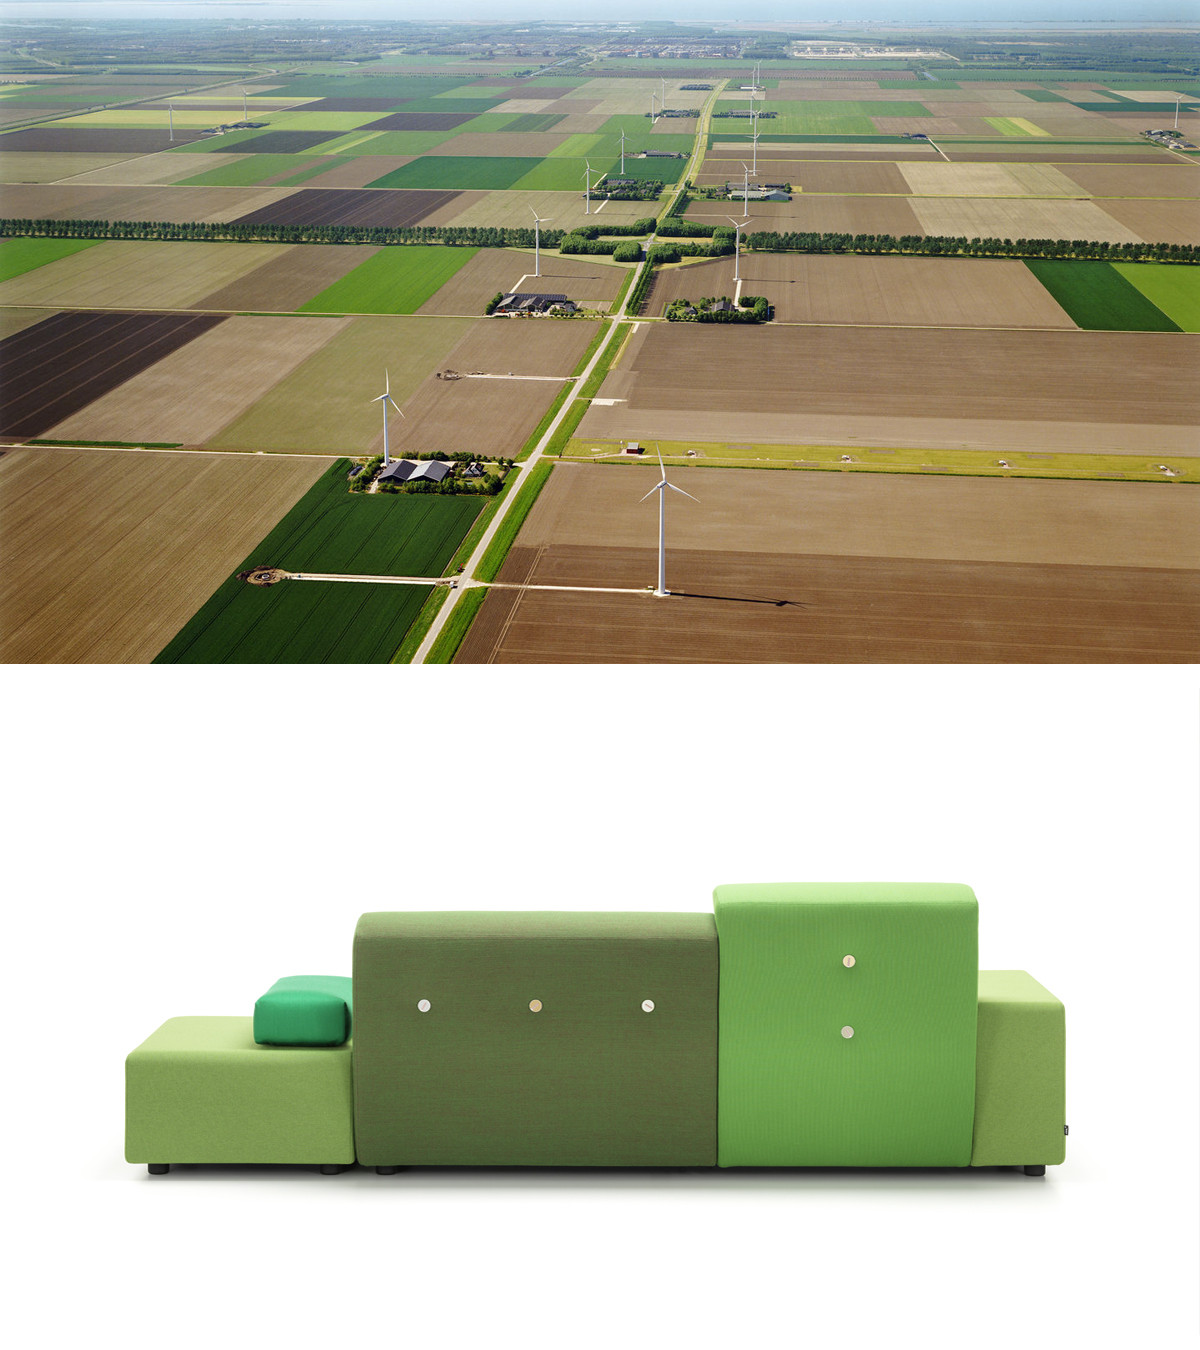 The Vitra Polder is influenced by the Dutch landscape